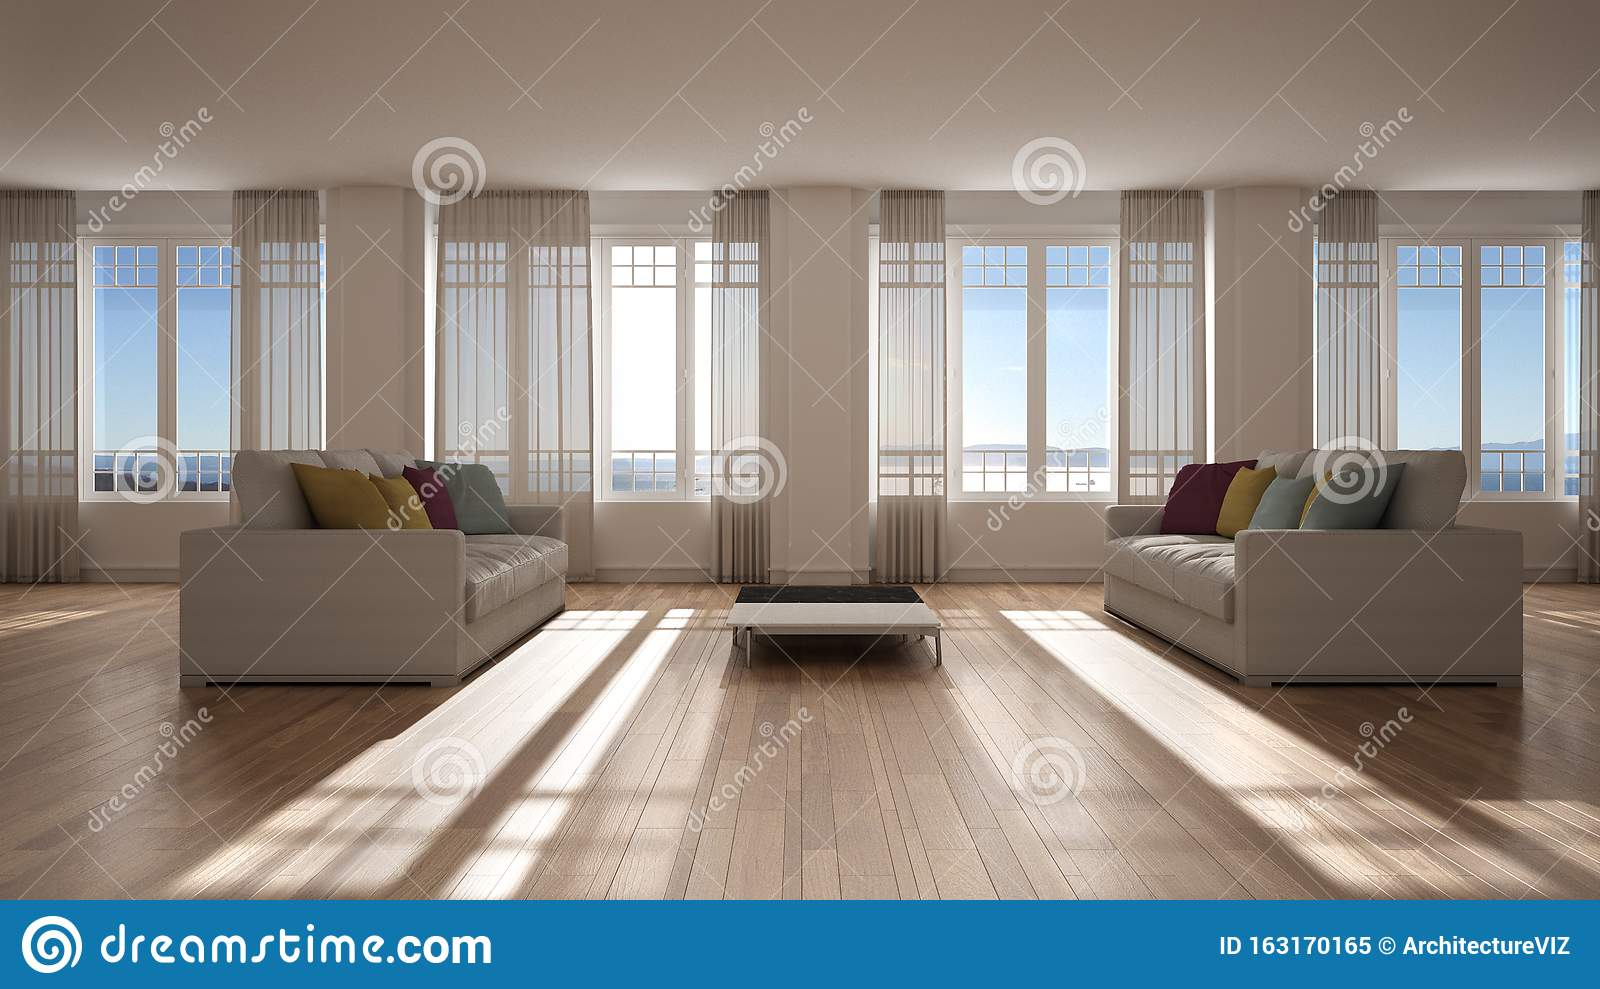 Open Space With Sofa Interior Design Modern Living Room Lounge With Big Panoramic Windows With Curtains And Sea View Parquet Stock Illustration Illustration Of Domestic Light 163170165